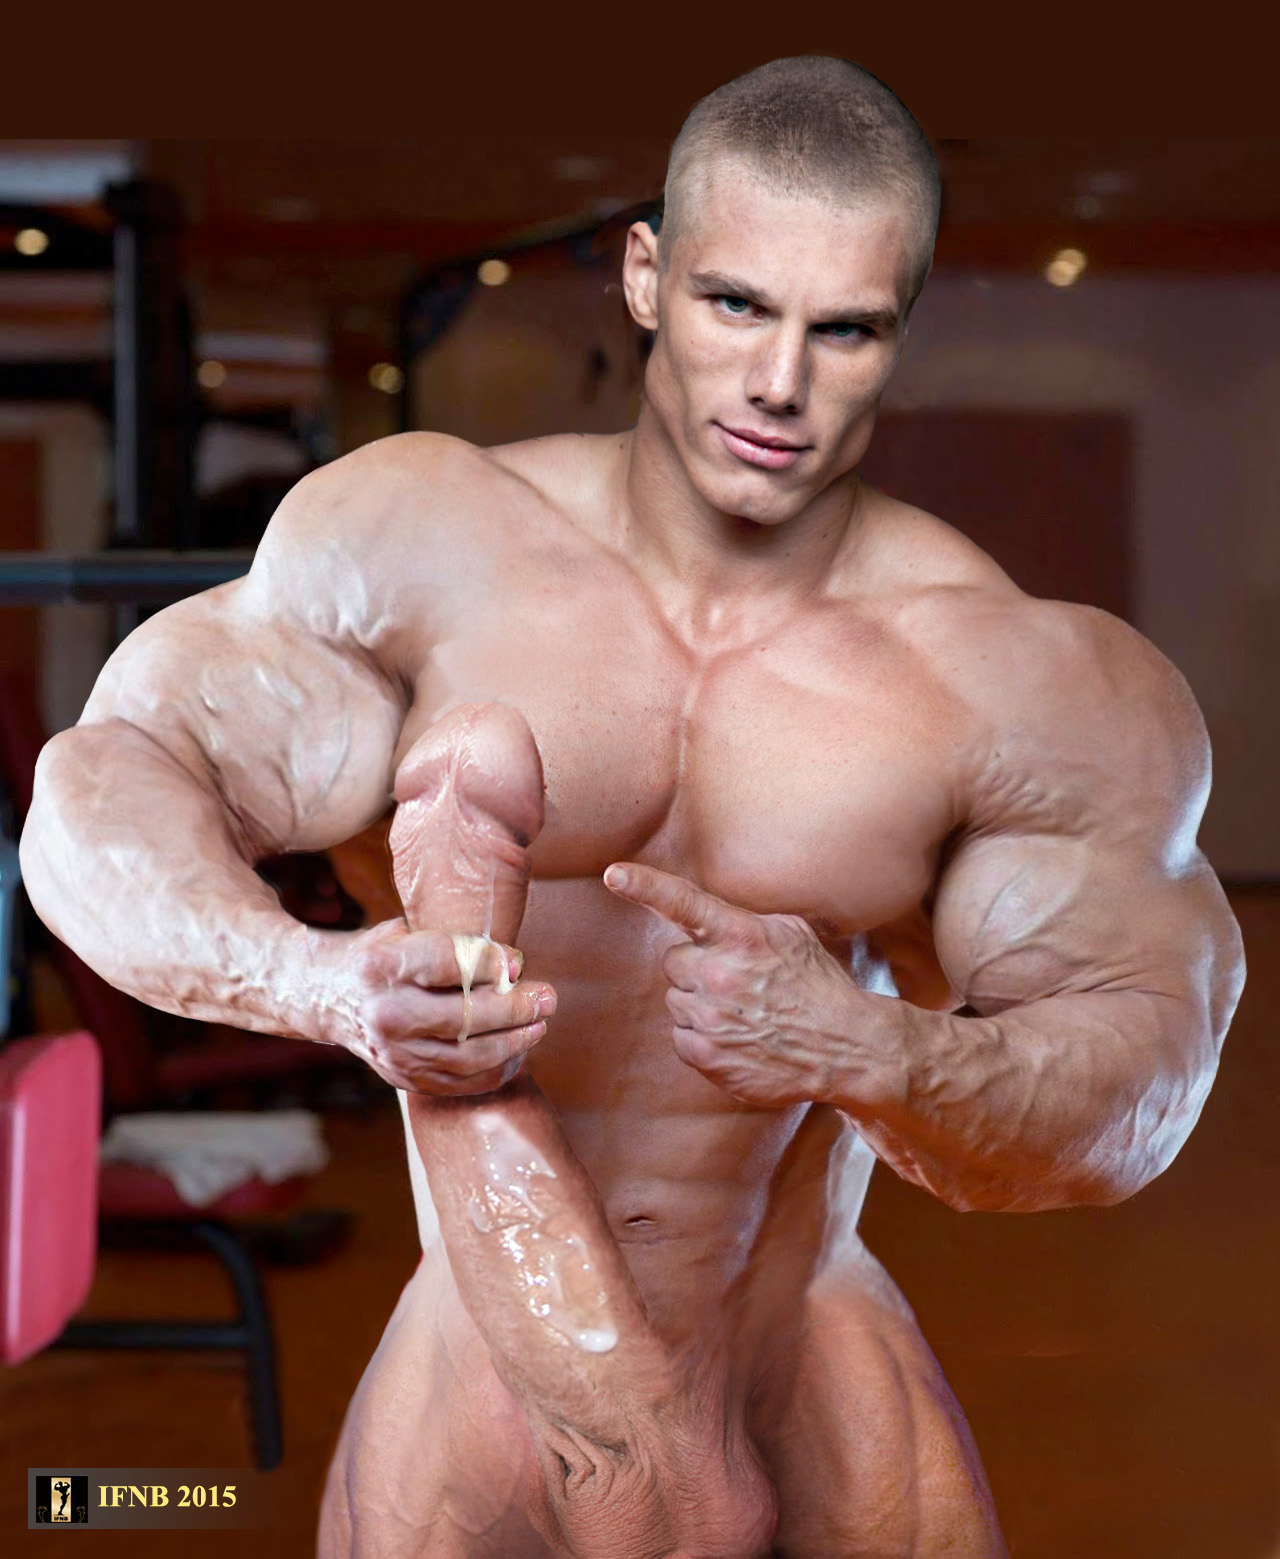 Big cock muscle men blog 99 something similar?